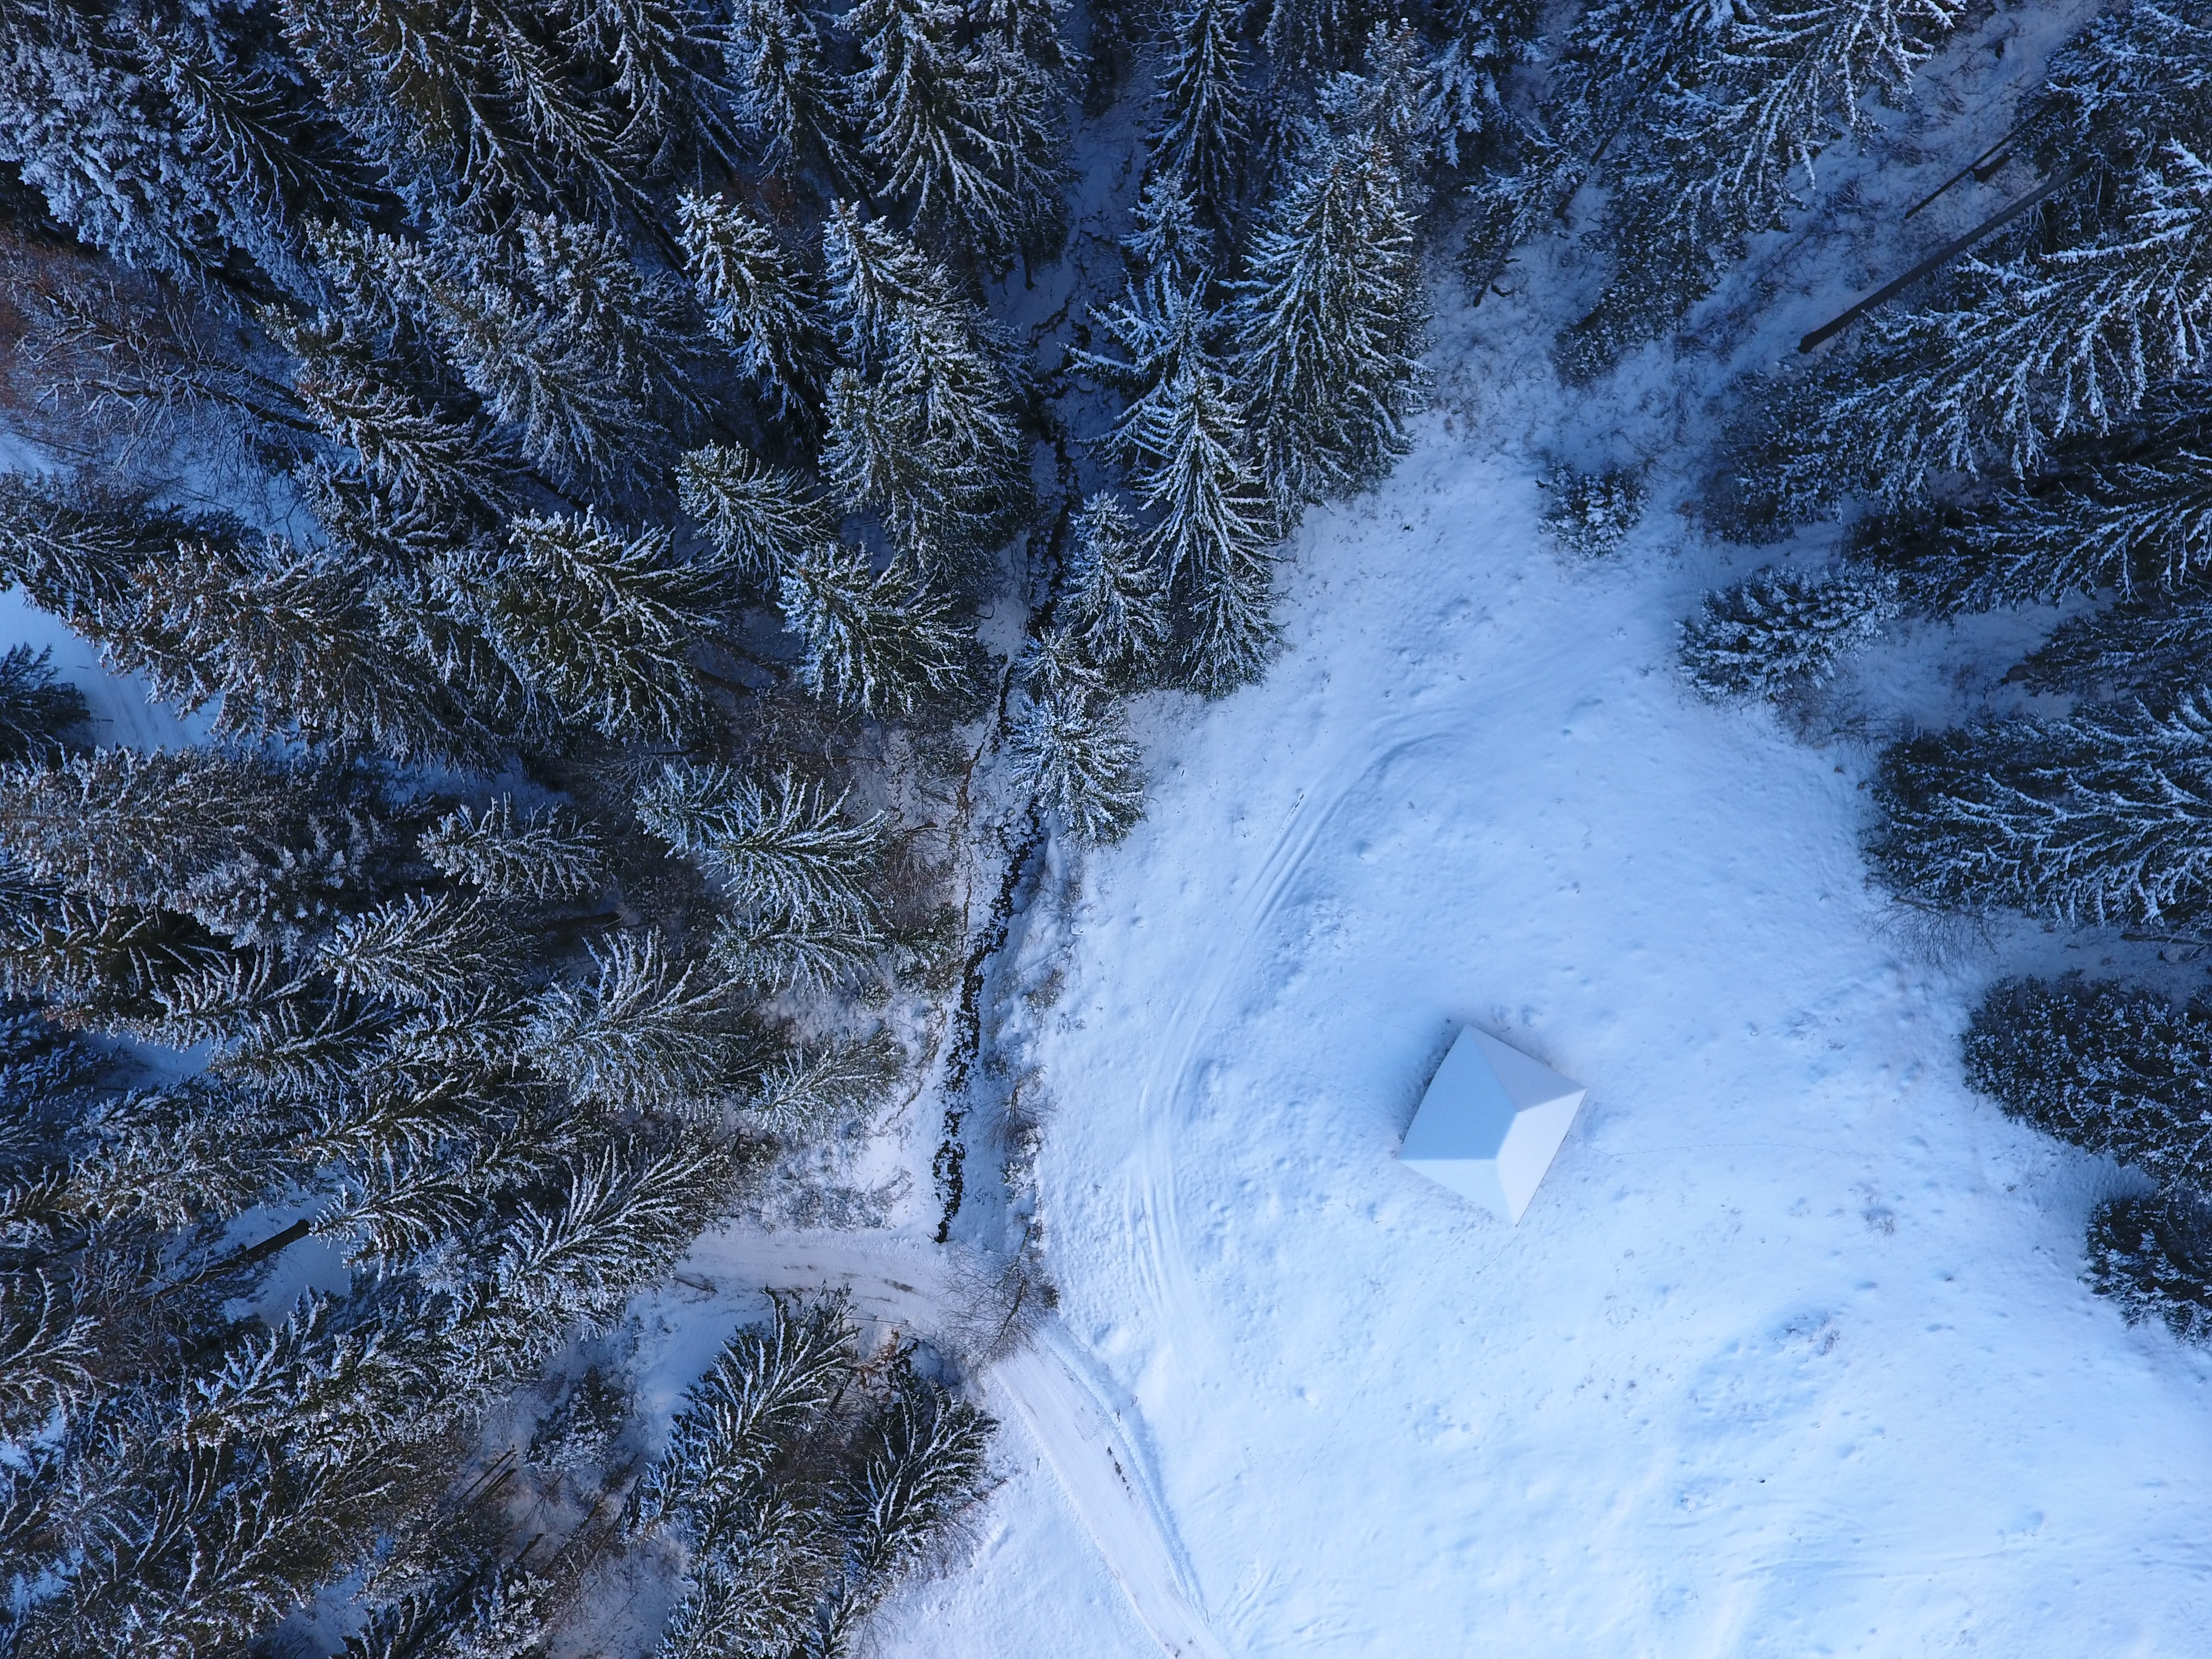 A drone shot of a small building at the edge of a snowy forest